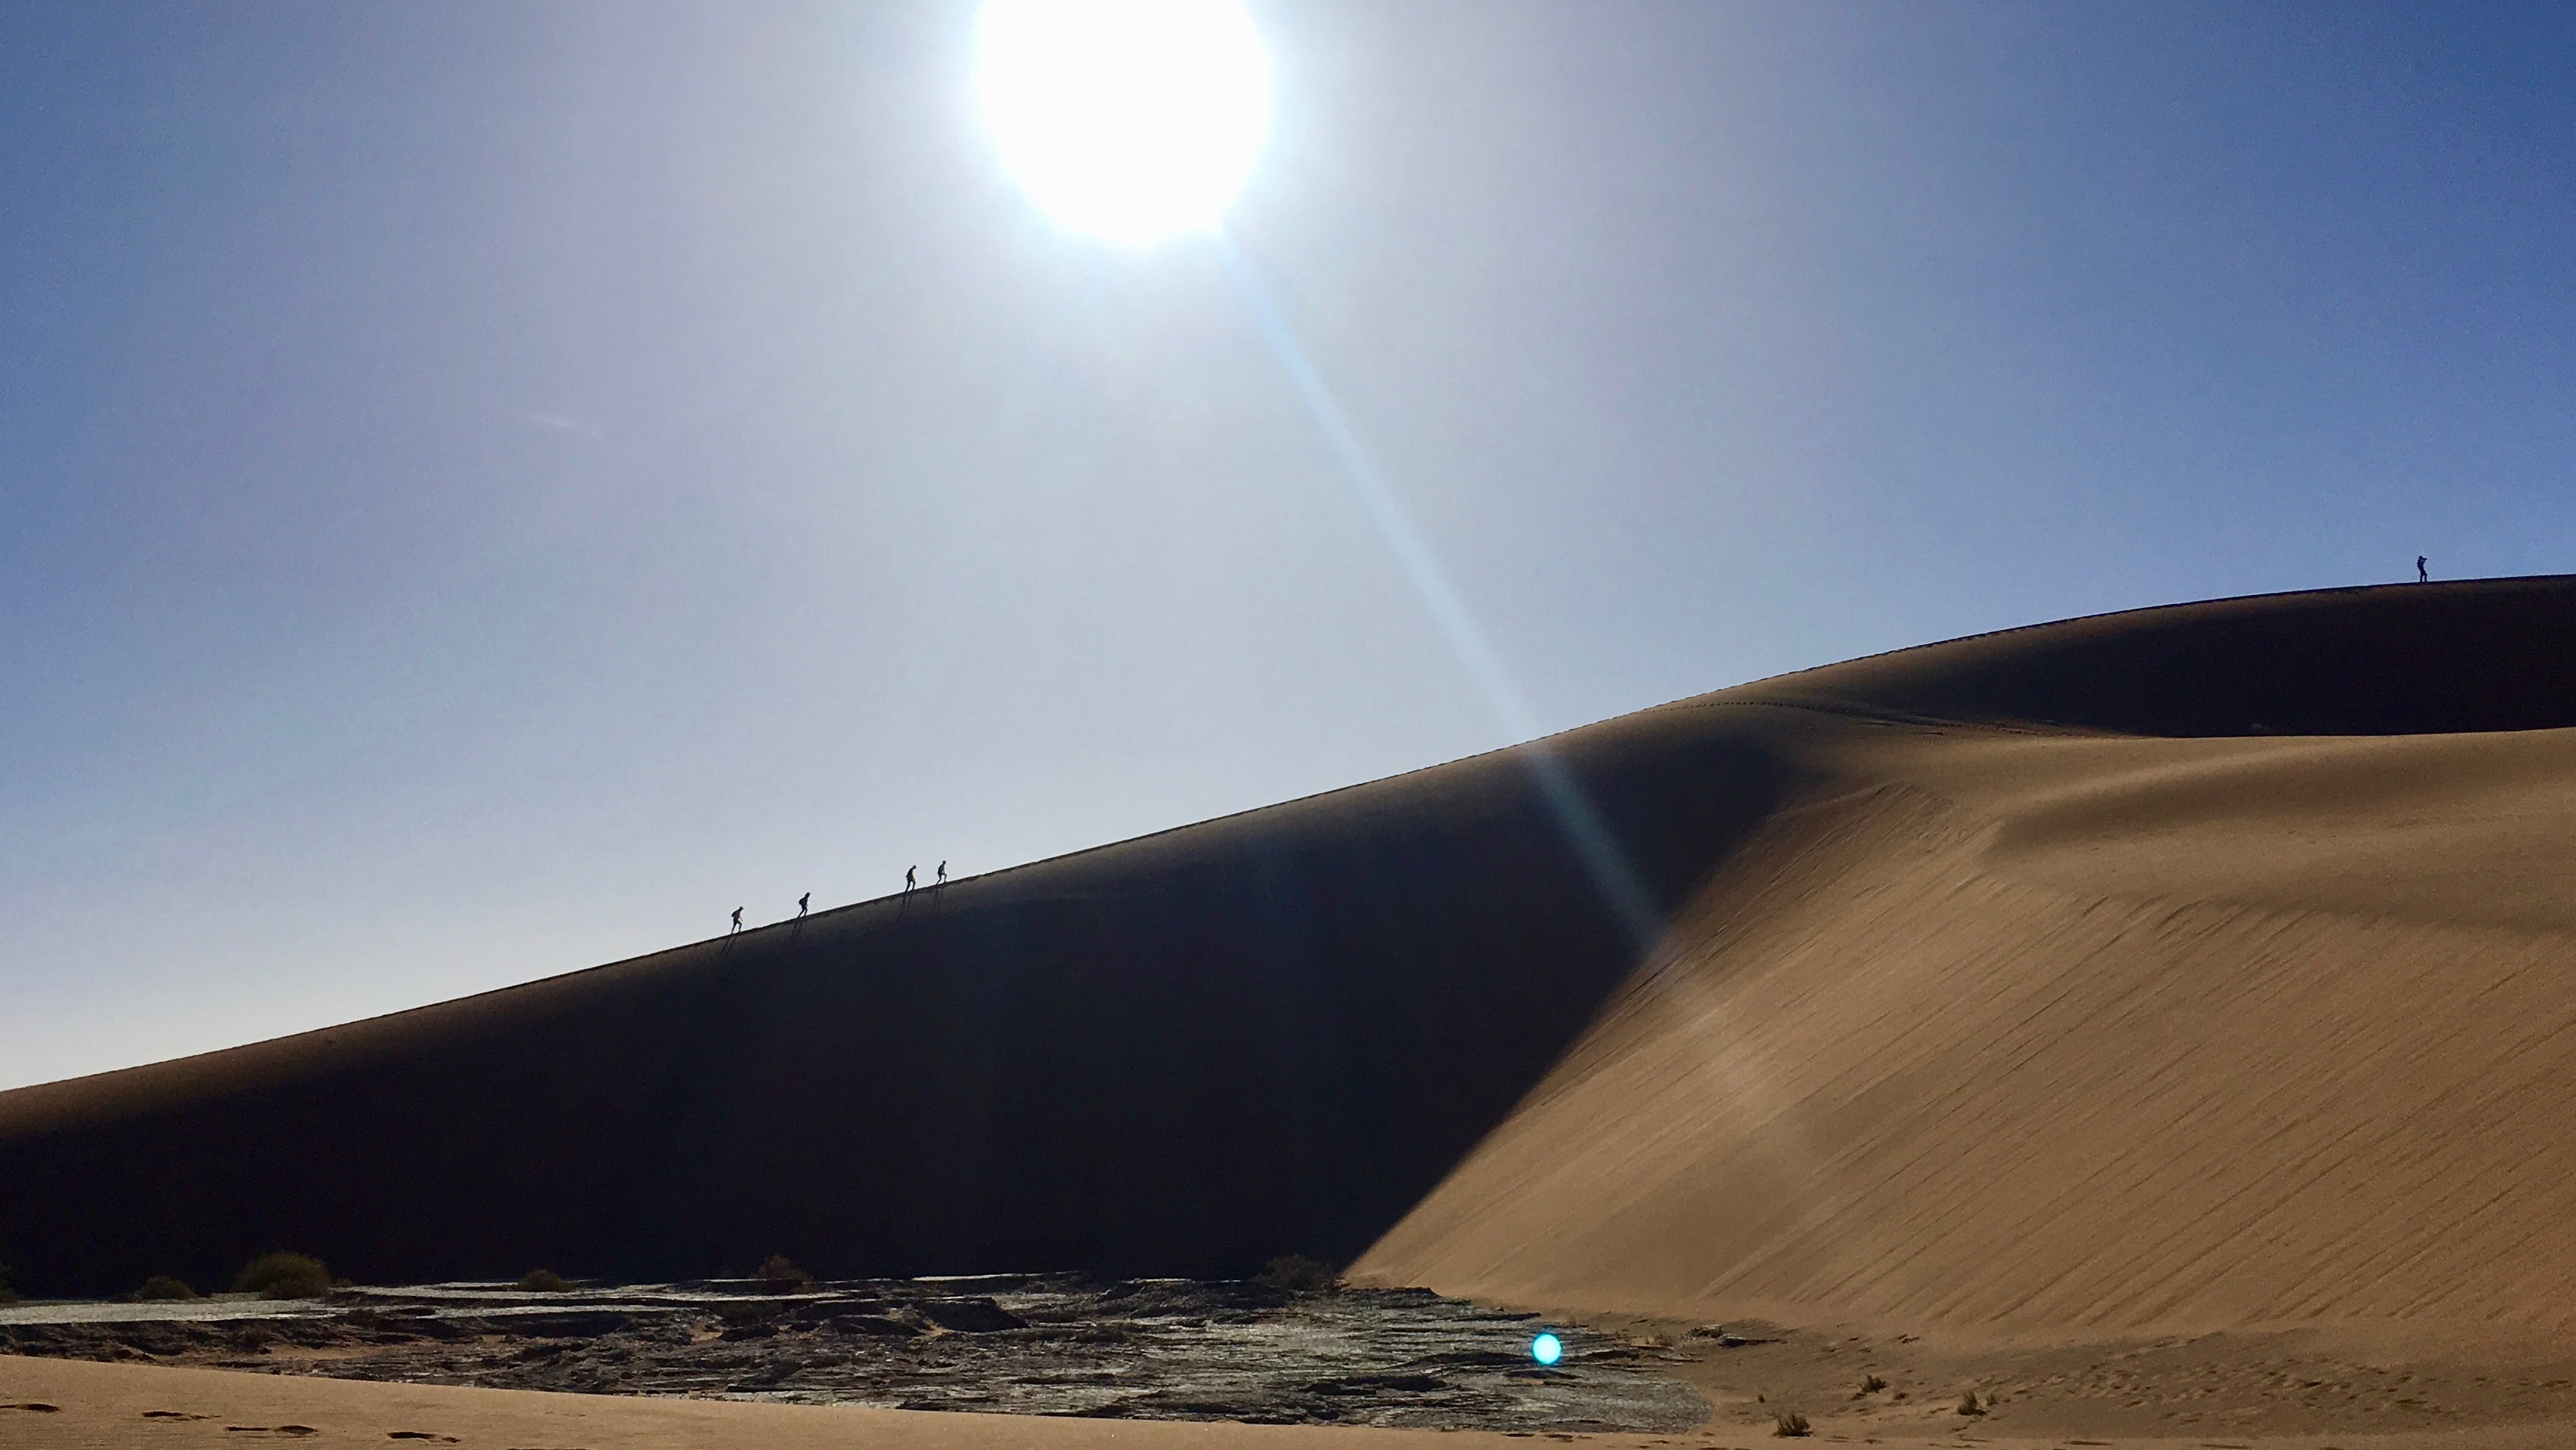 The Largest sand dune in the world